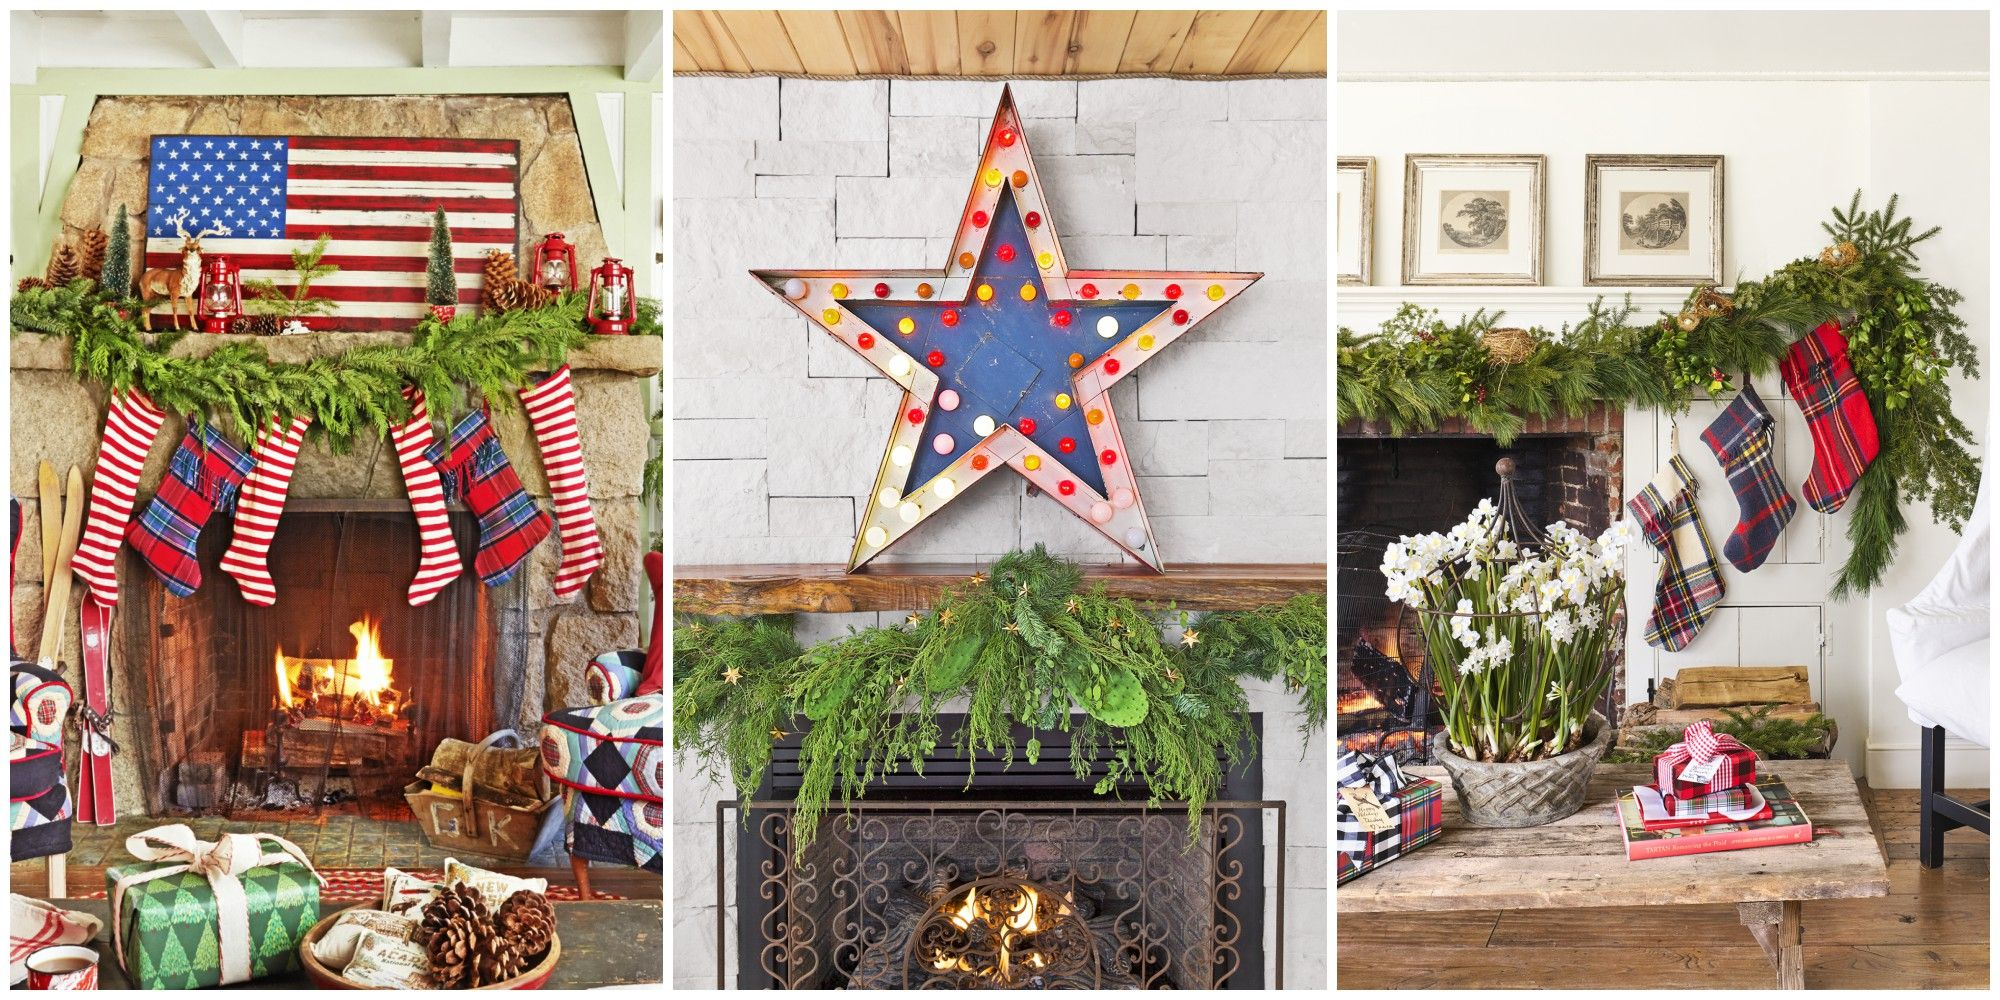 Fireplace Mantel Holiday Decorating Ideas Part - 45: 38 Christmas Mantel Decorations - Ideas For Holiday Fireplace Mantel  Decorating